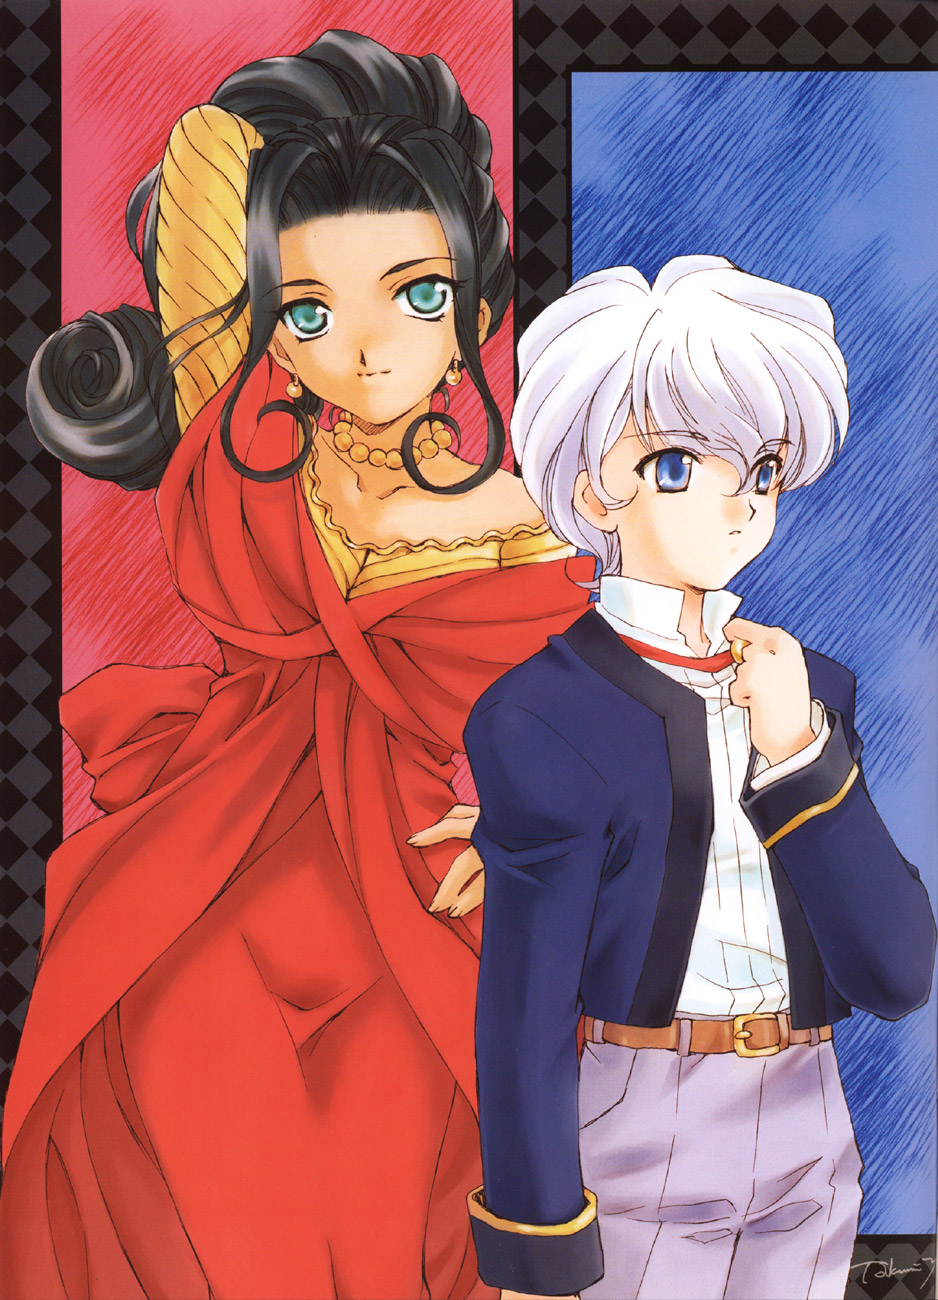 Sakura Wars illustrations: the Origin + Tribute image by Yano Takumi